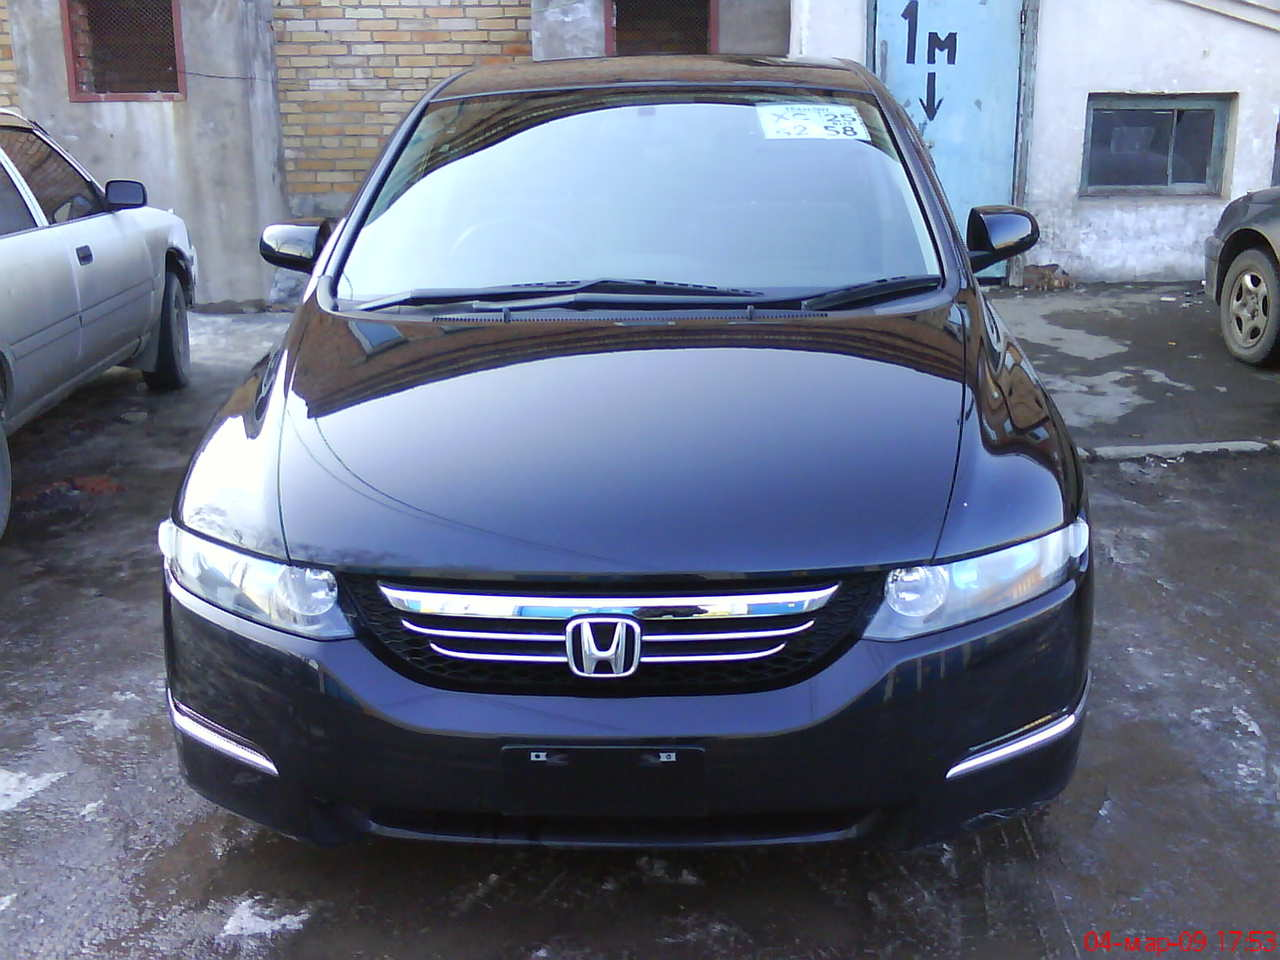 2003 honda odyssey transmission recall 2003 honda odyssey ex l transmission problems 2003. Black Bedroom Furniture Sets. Home Design Ideas